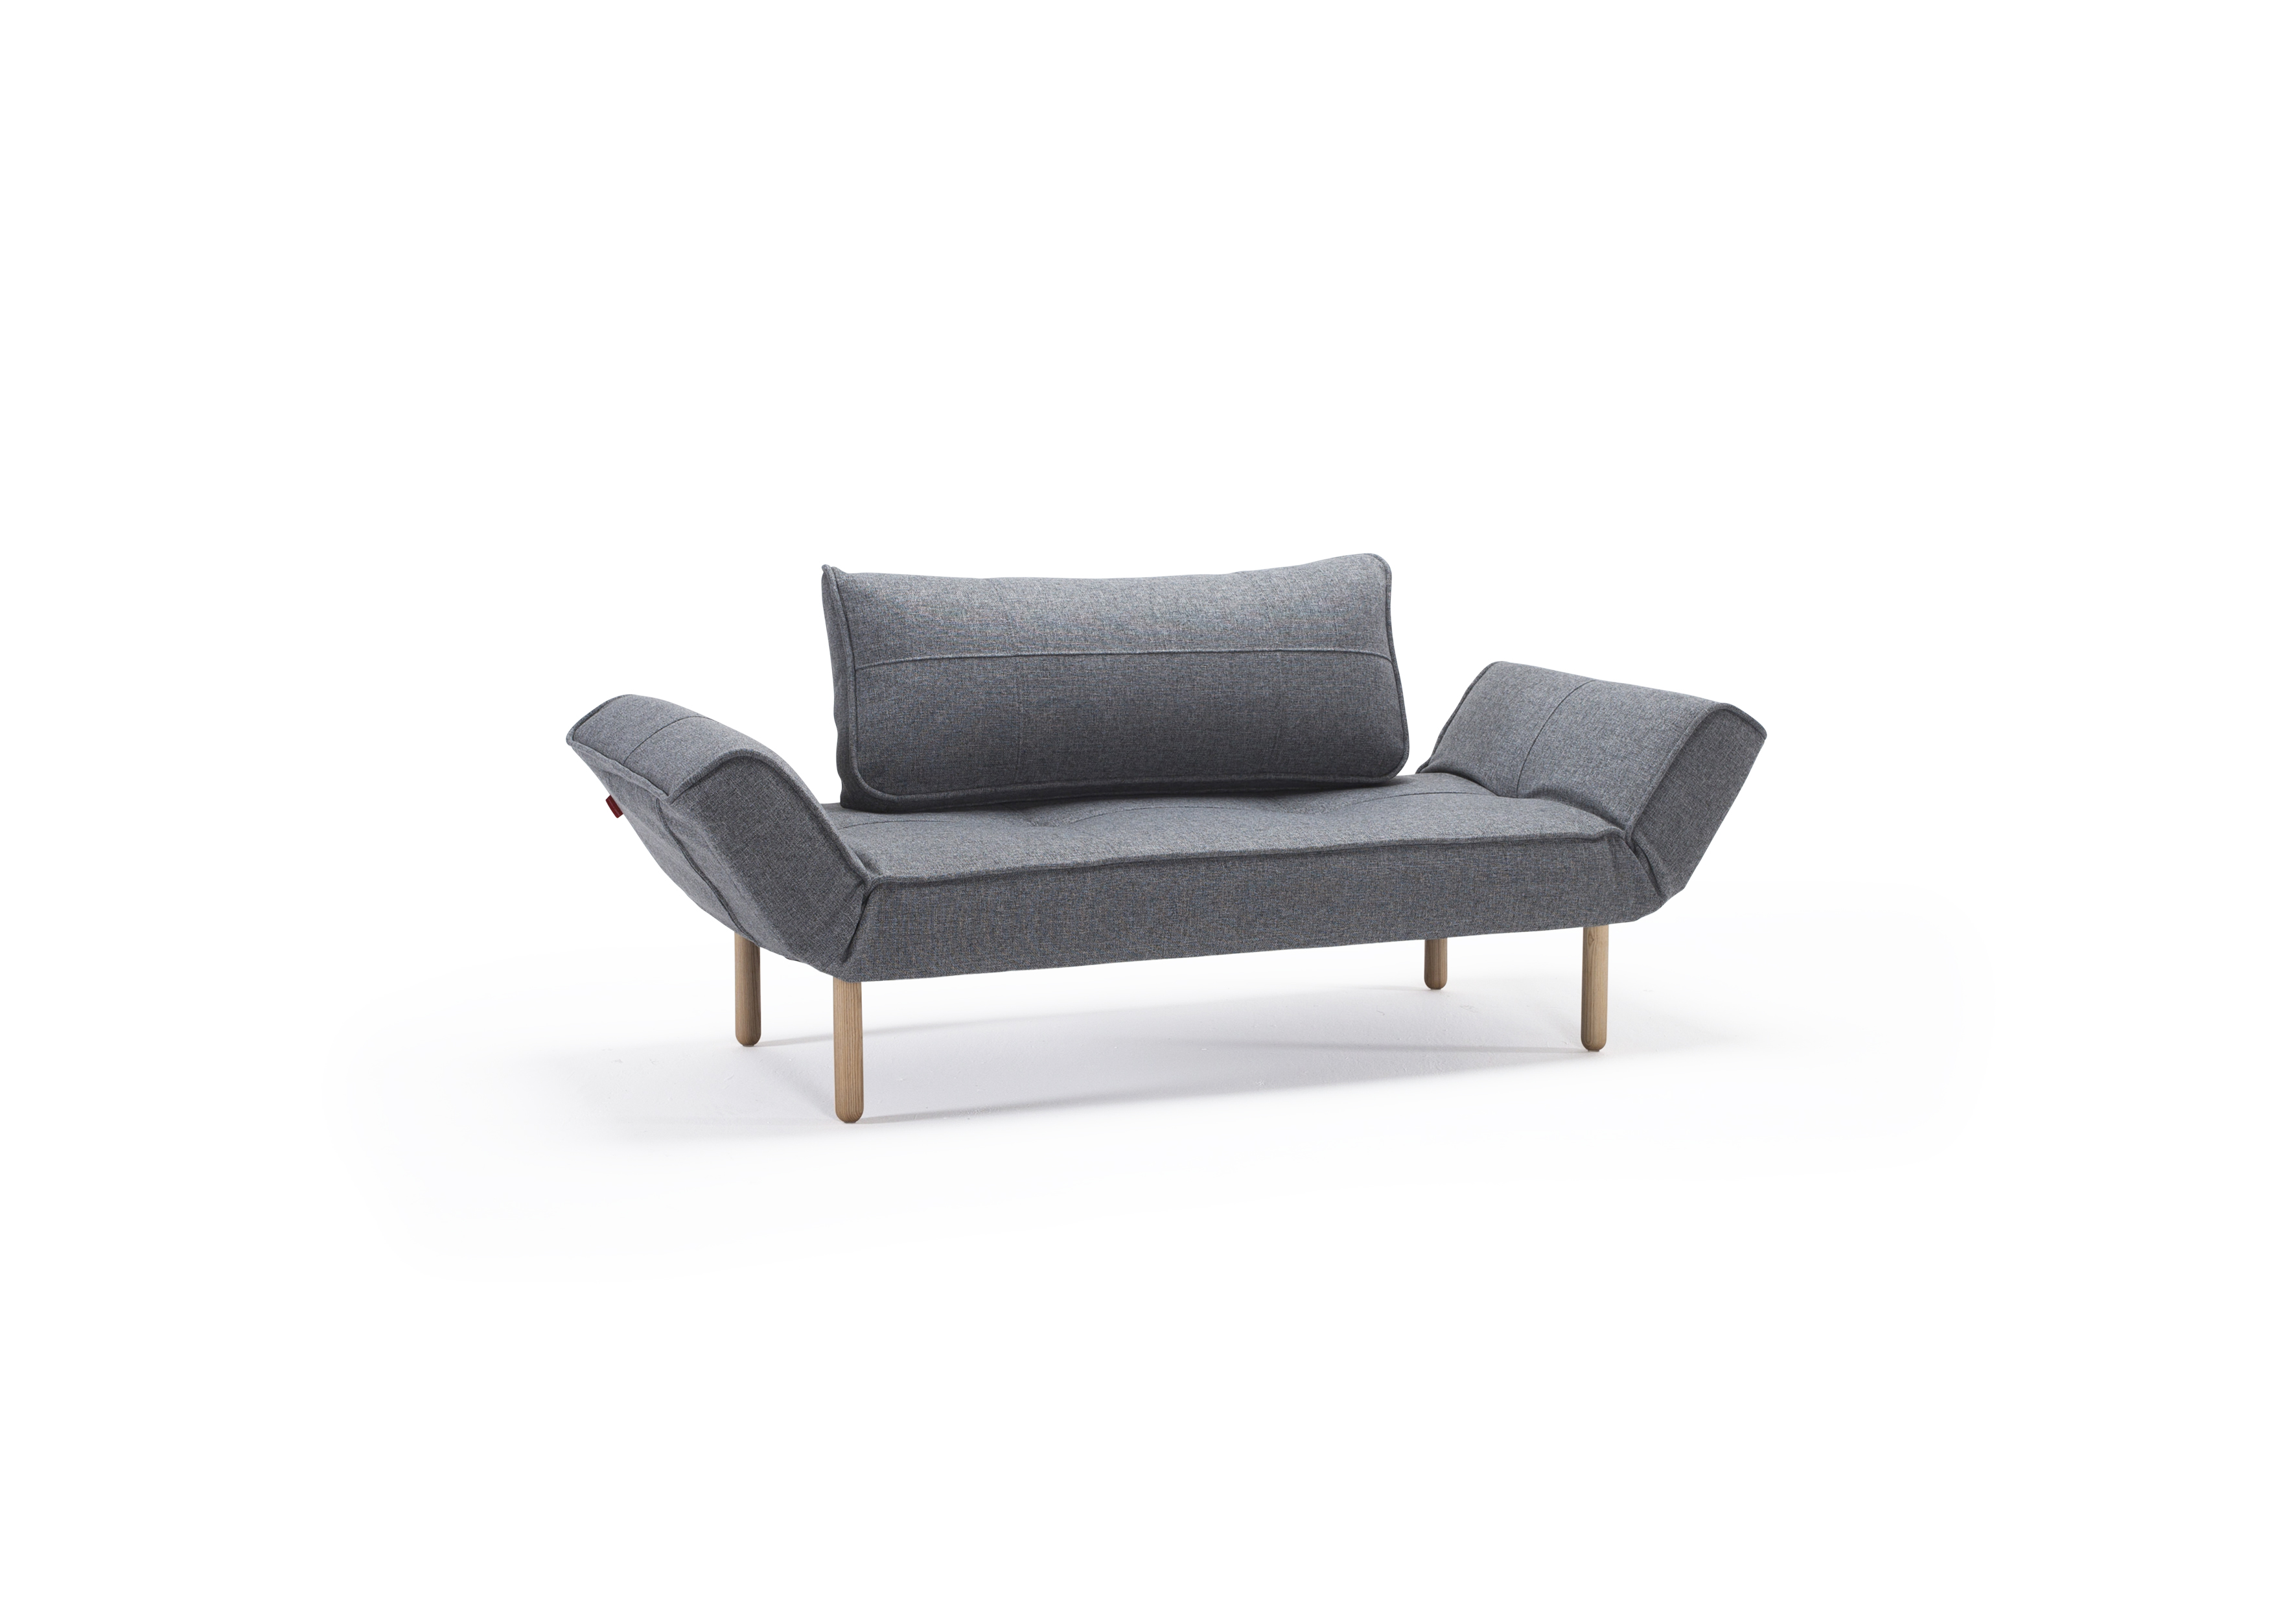 ISTYLE-2015-ZEAL-DAYBED-STEM-LIGHT-WOOD-565-TWIST-GRANITE-SOFA-POSITION